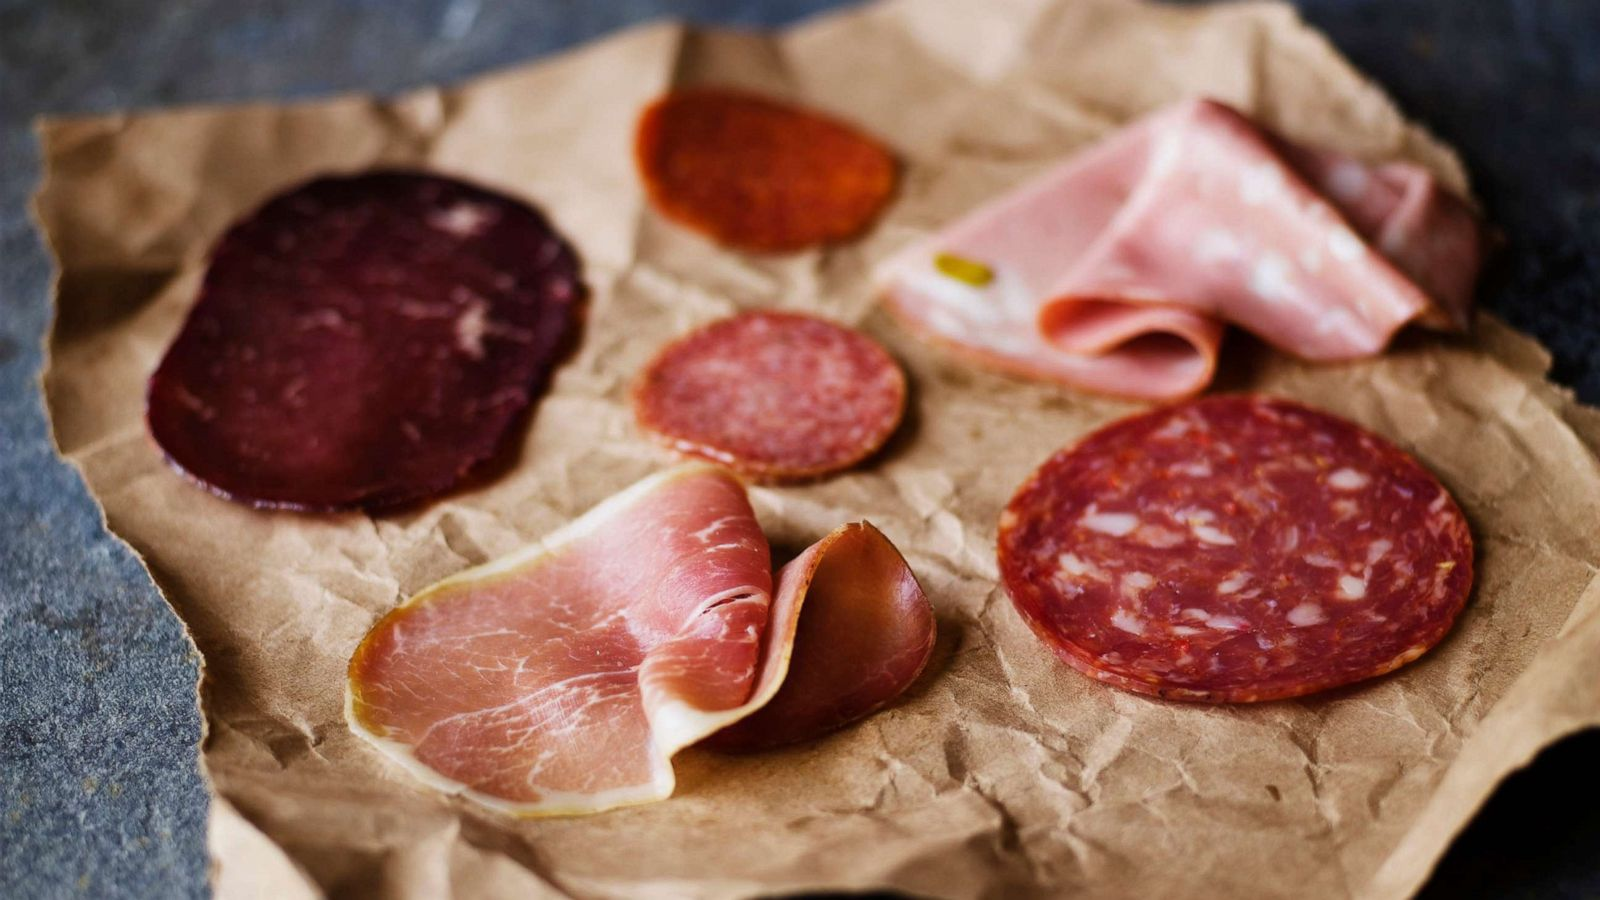 is salami ok on keto diet